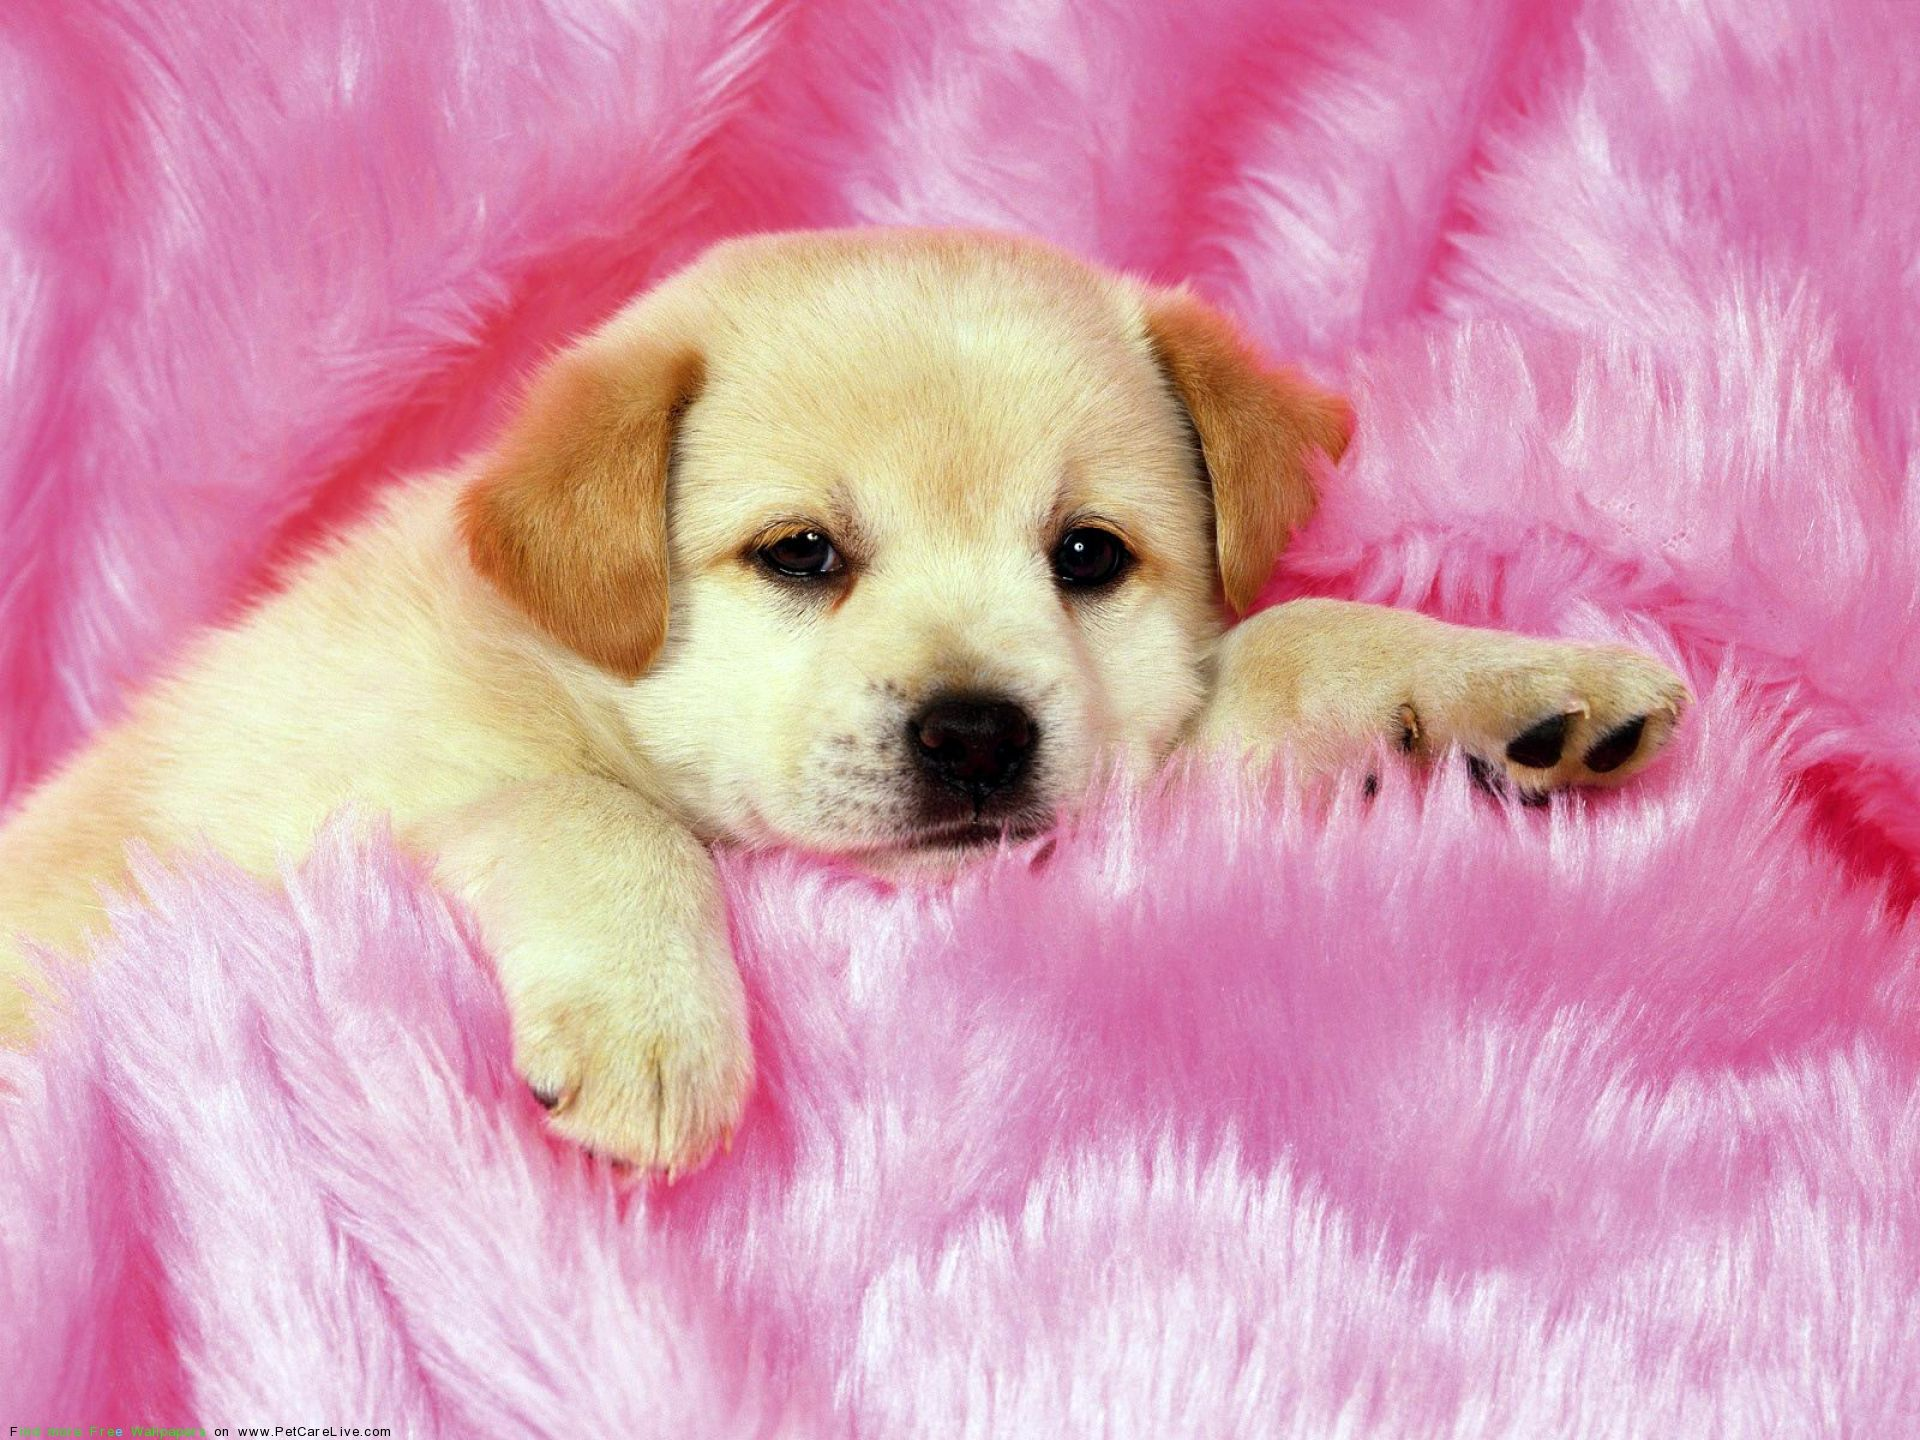 Alex Norie Gasketch Blog Puppies Wallpaper Cute Dog Wallpaper